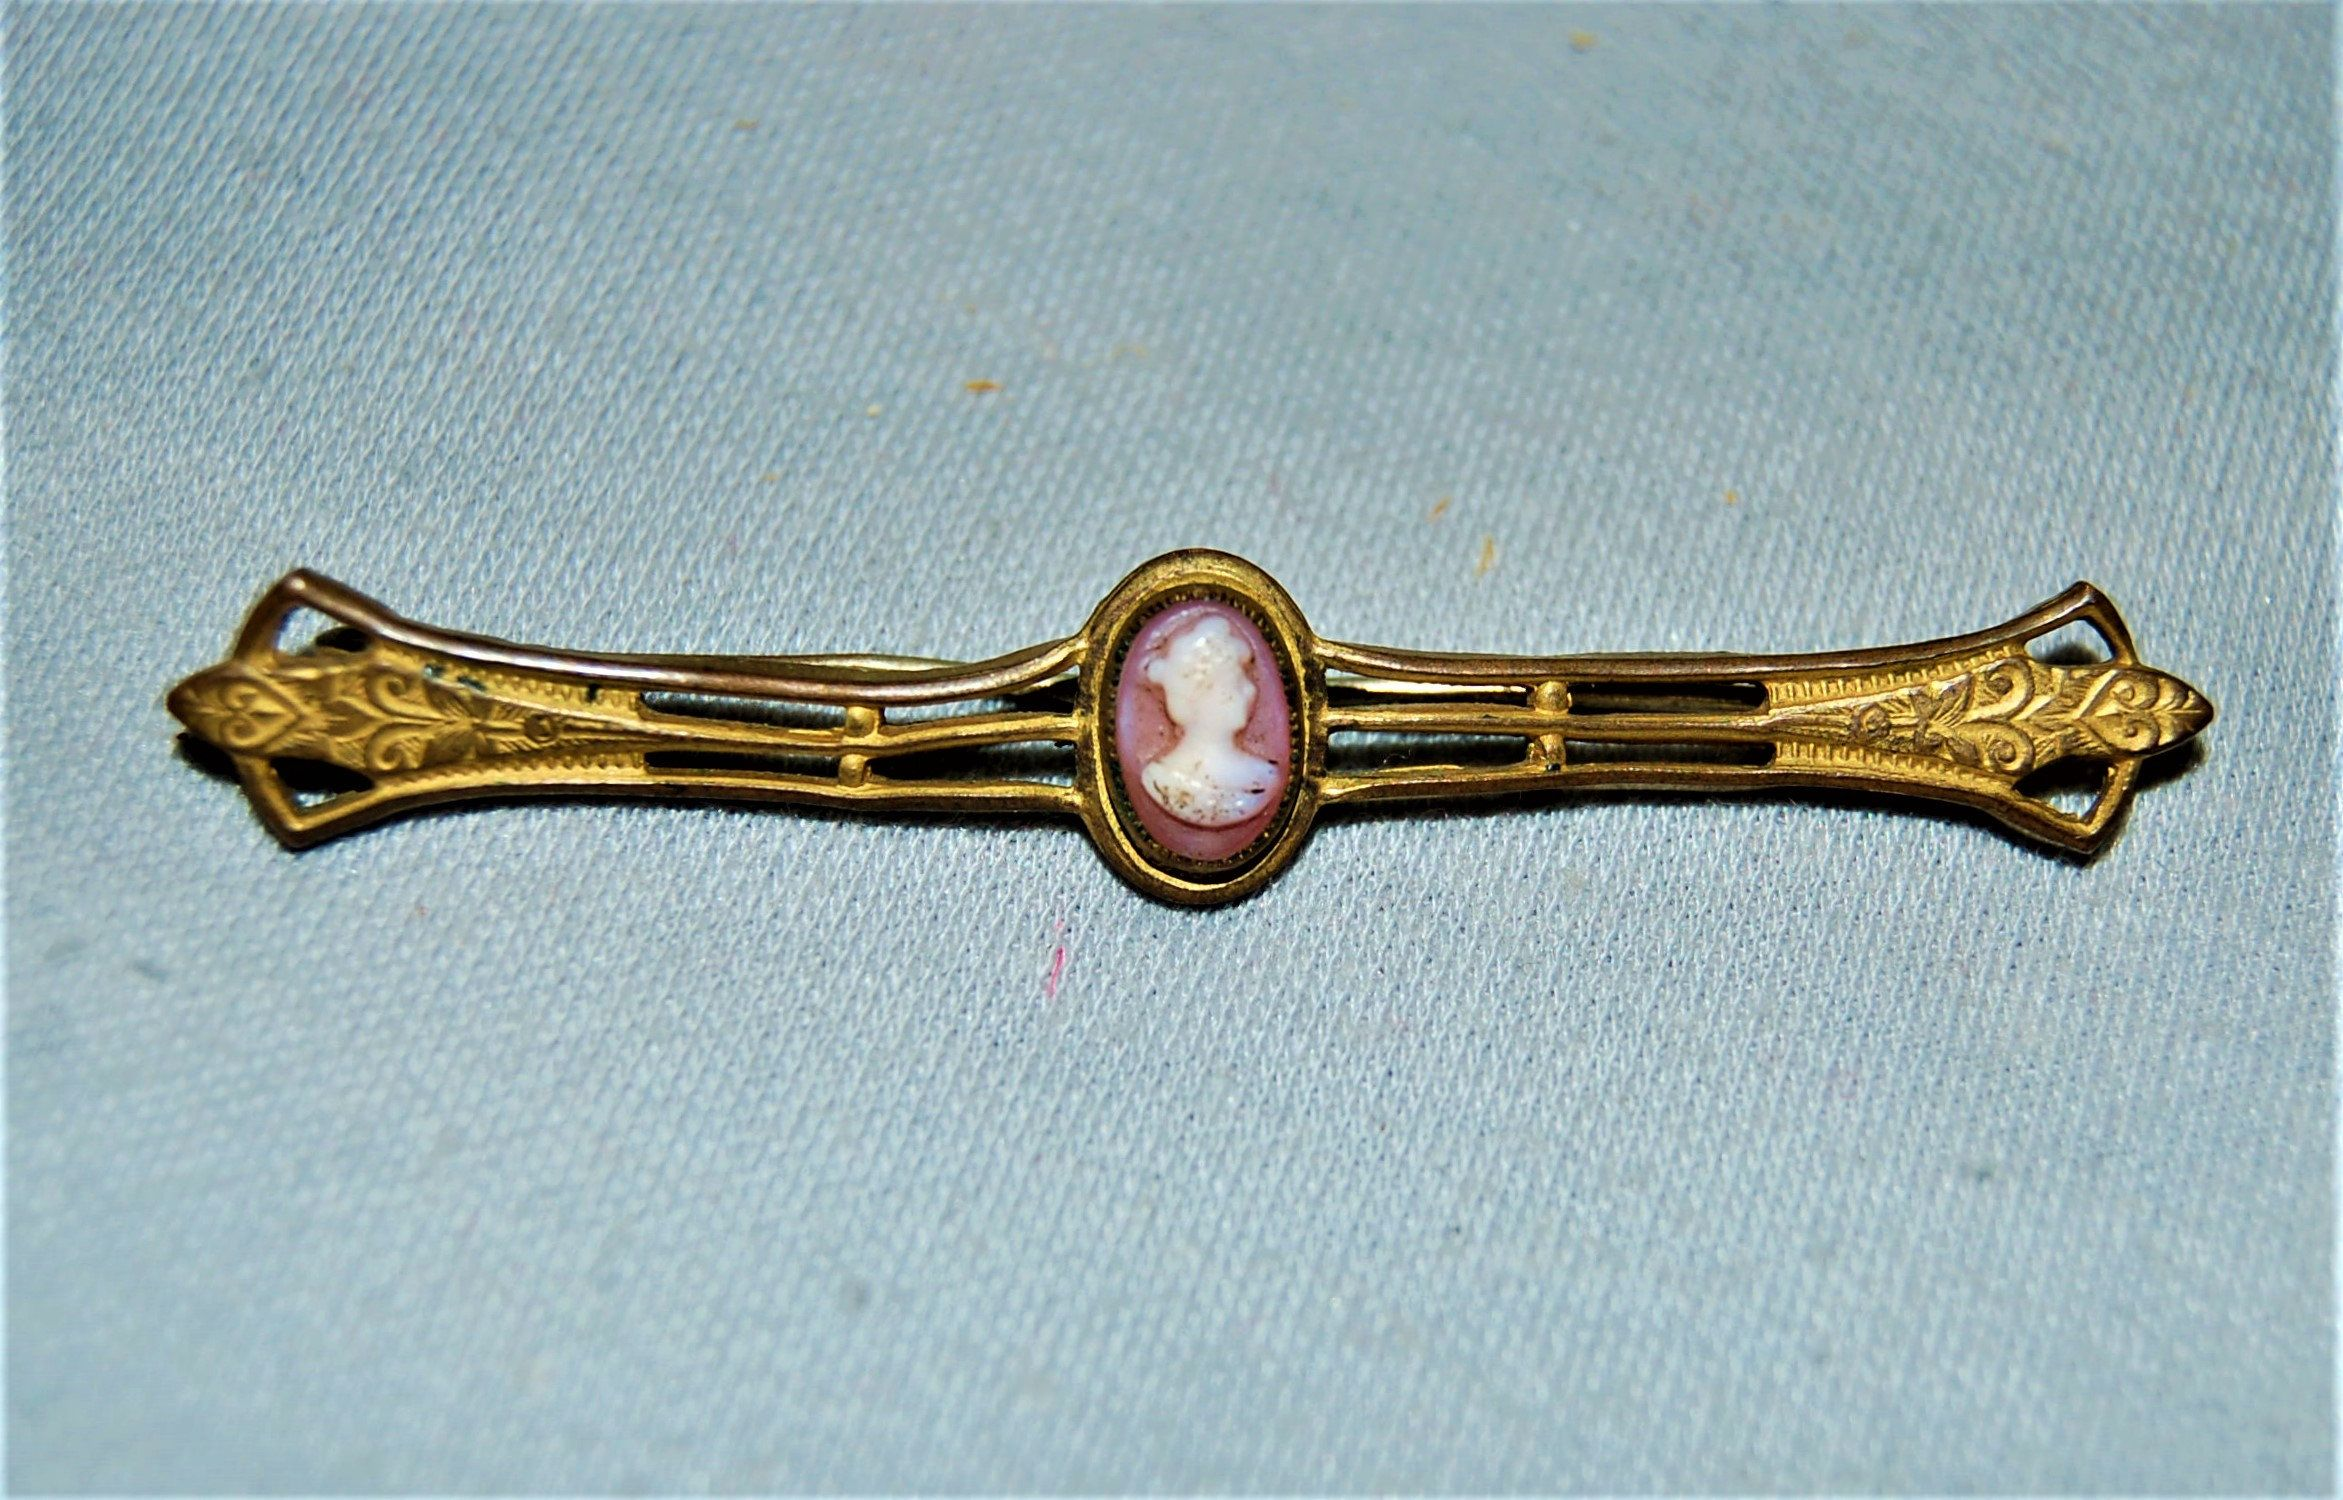 Rhinestone Bar Pin C Clasp Vintage old jewelry Victorian Antique Brooch